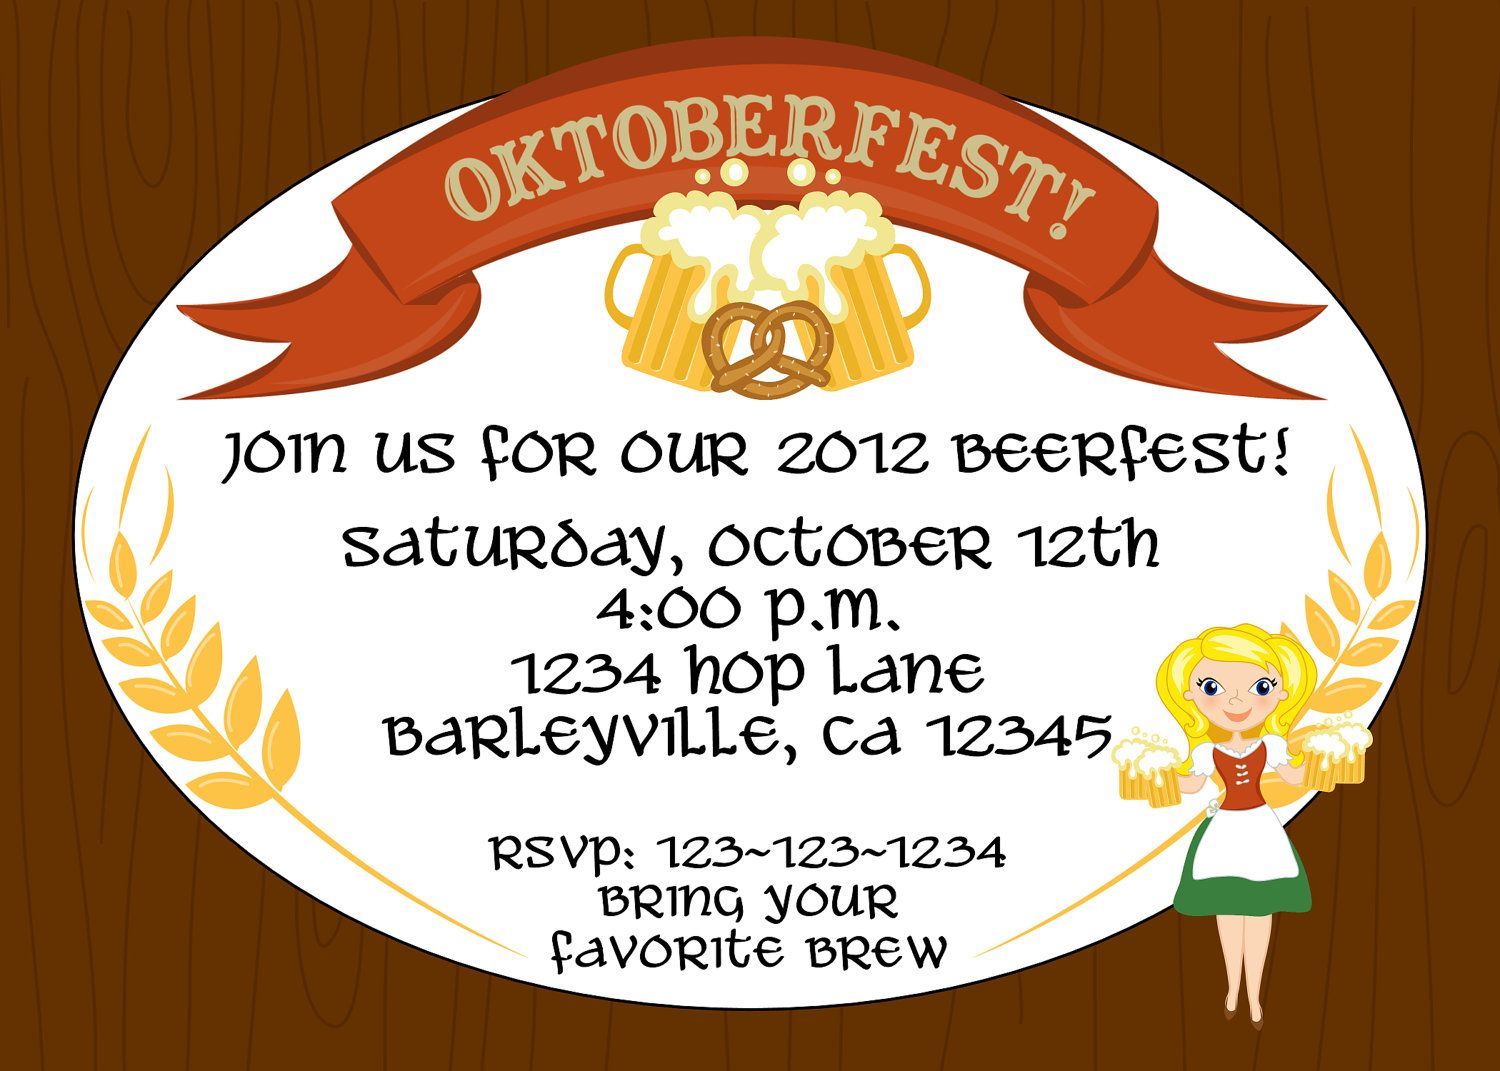 Creative Oktoberfest Beerfest Invitation Template Design Oval